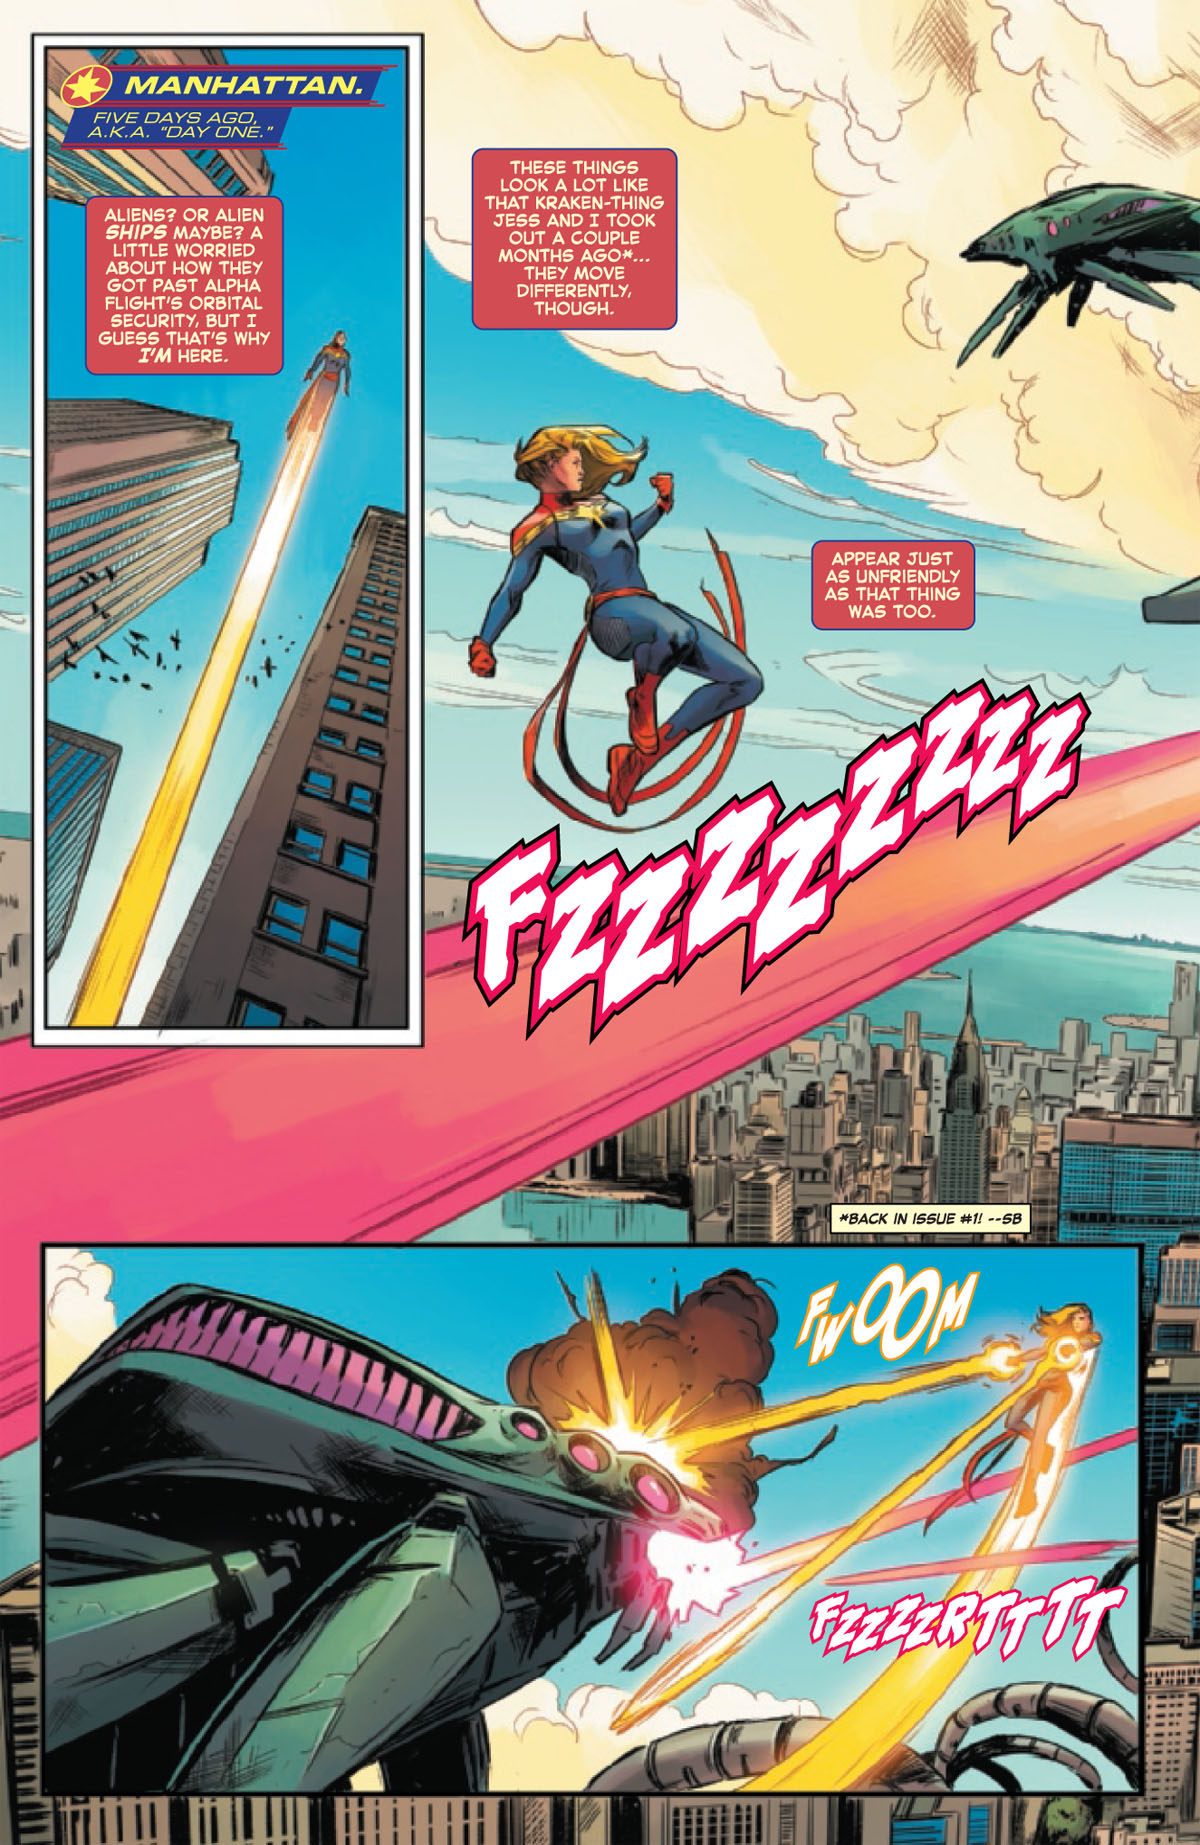 Captain Marvel #8 page 2